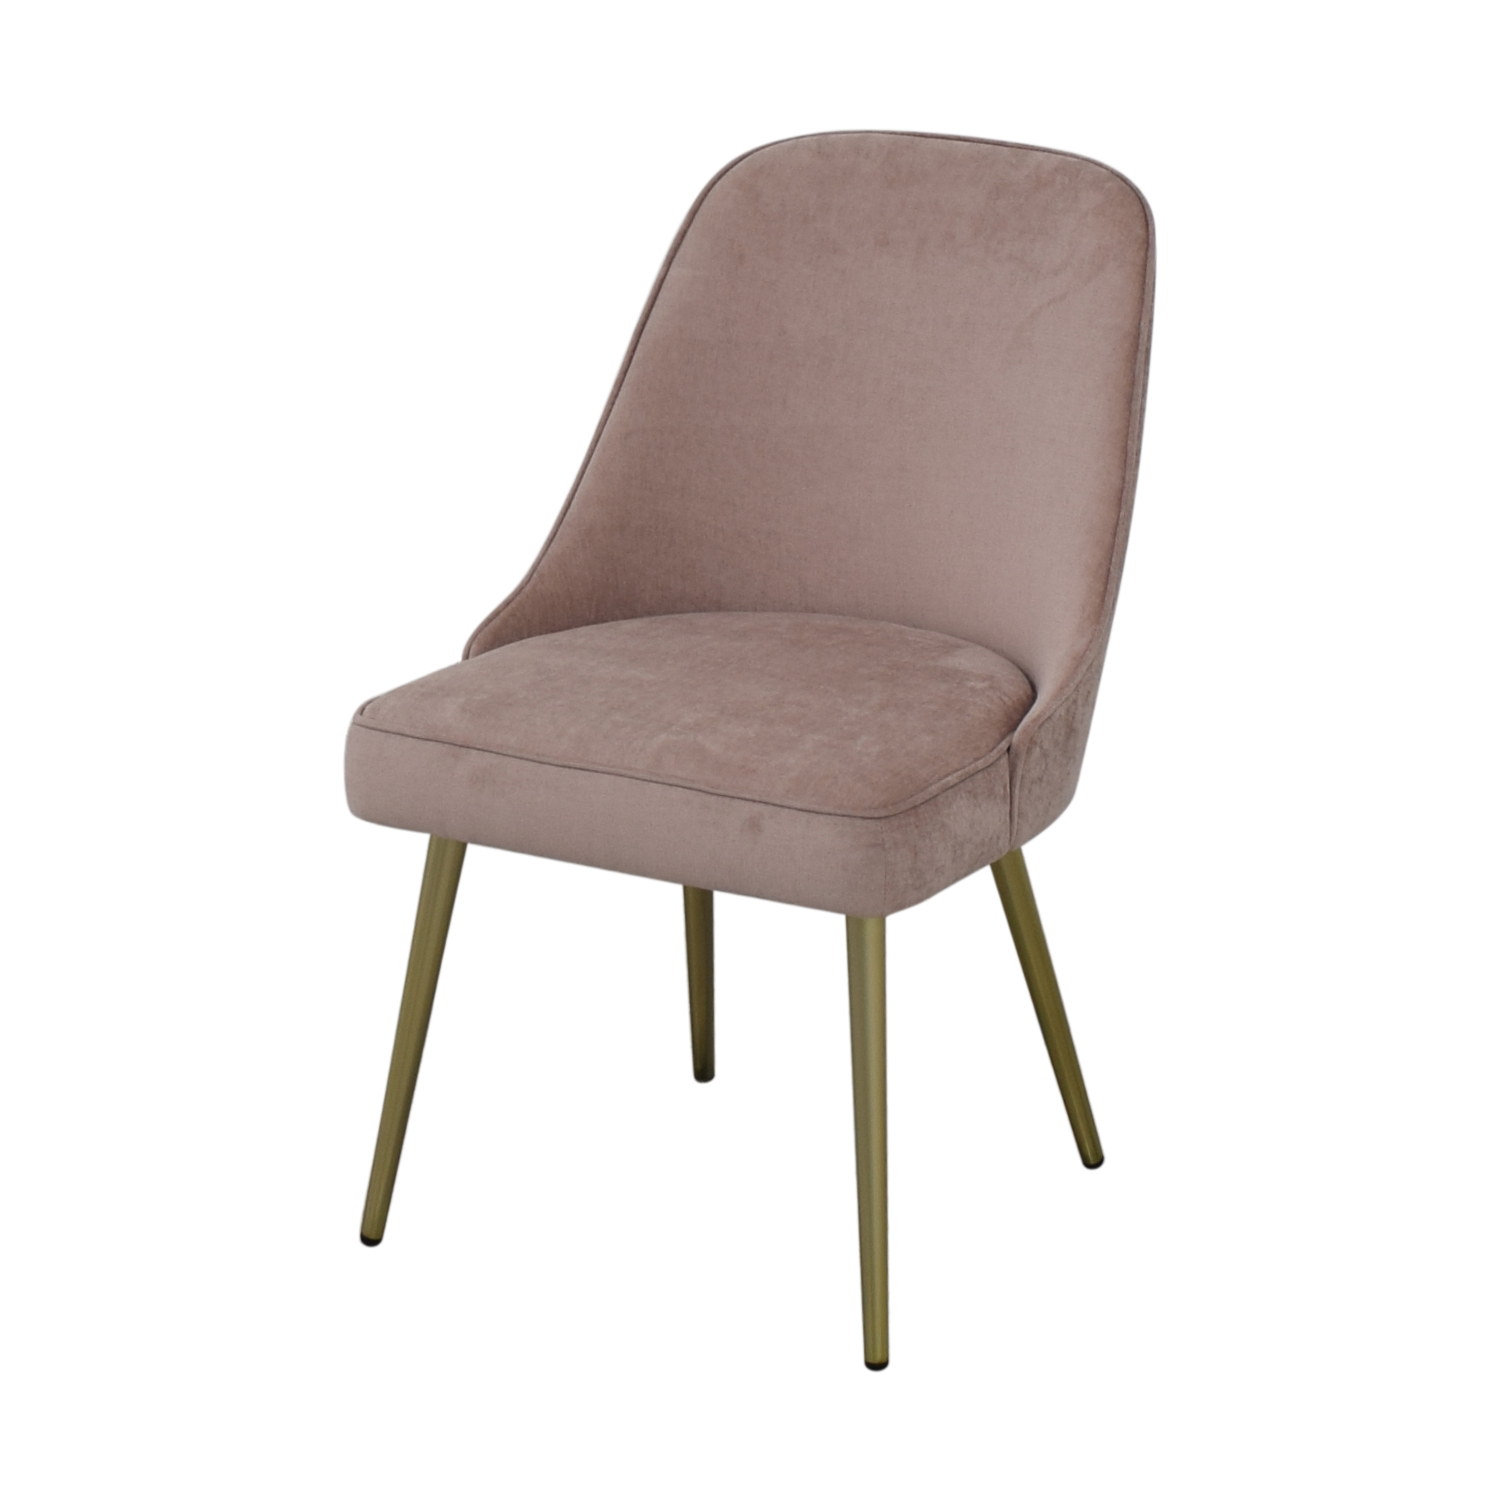 West Elm West Elm Mid Century Upholstered Dining Chairs for sale